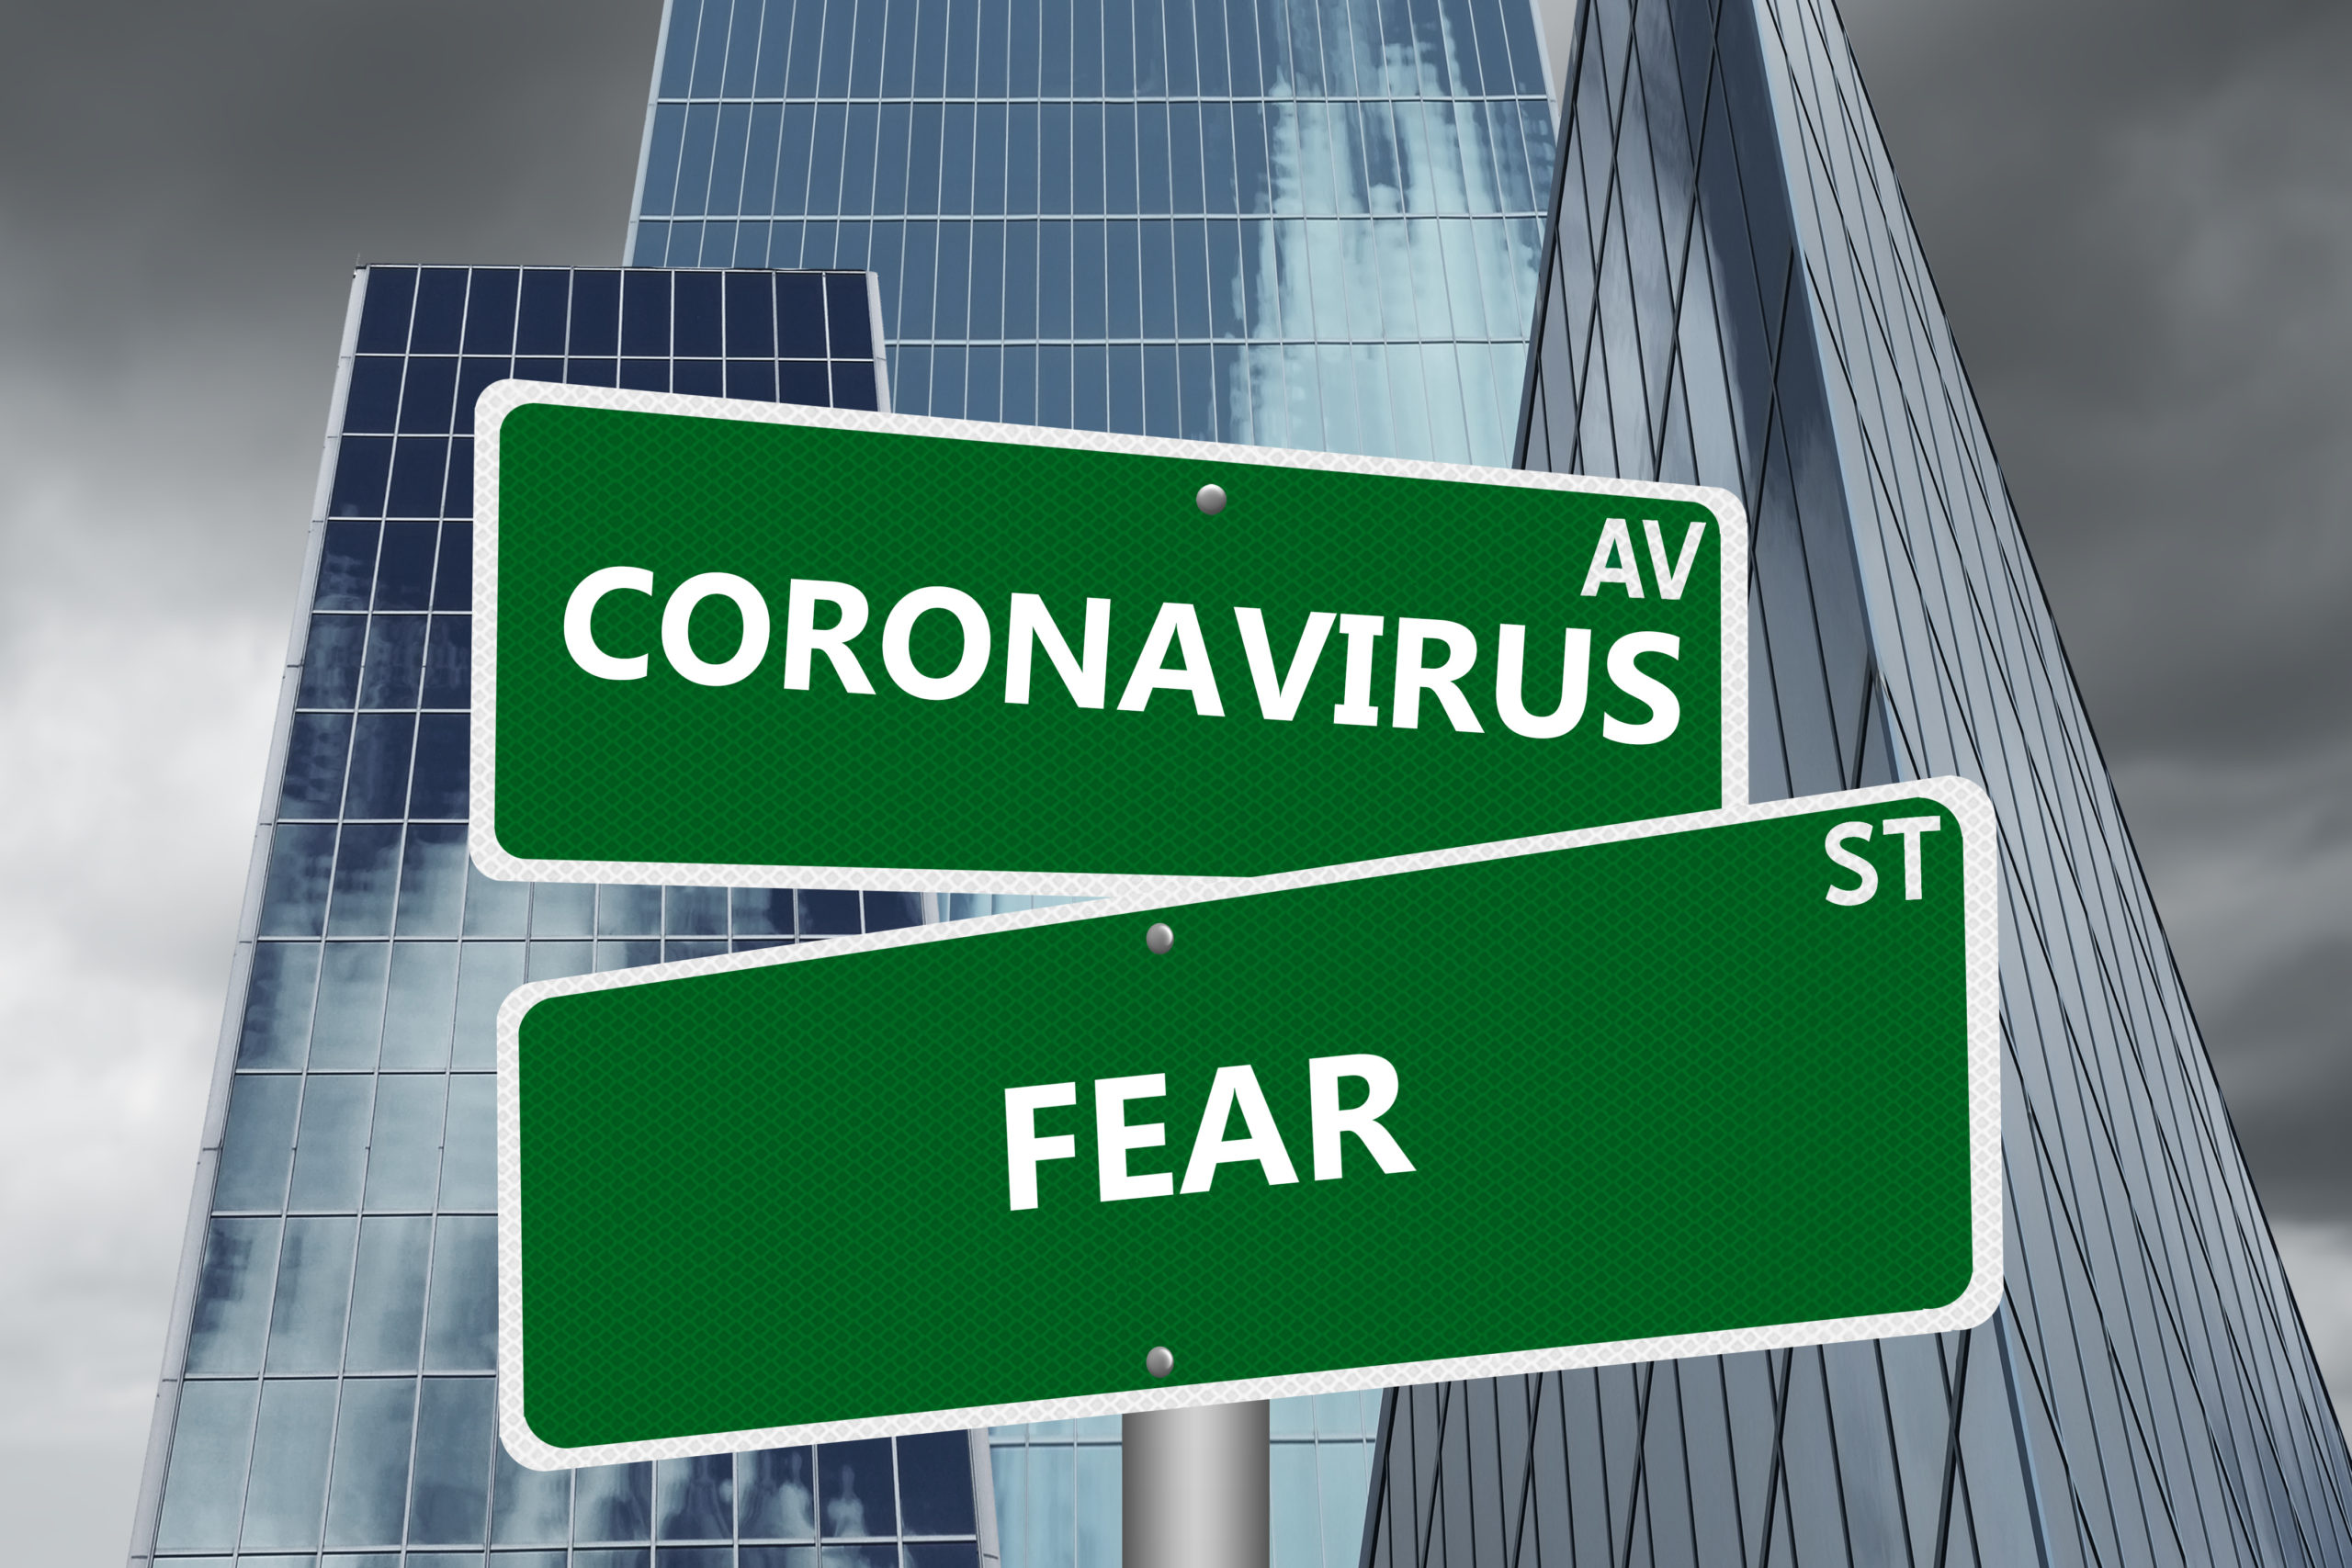 Coronavirus Av & Fear St Signs